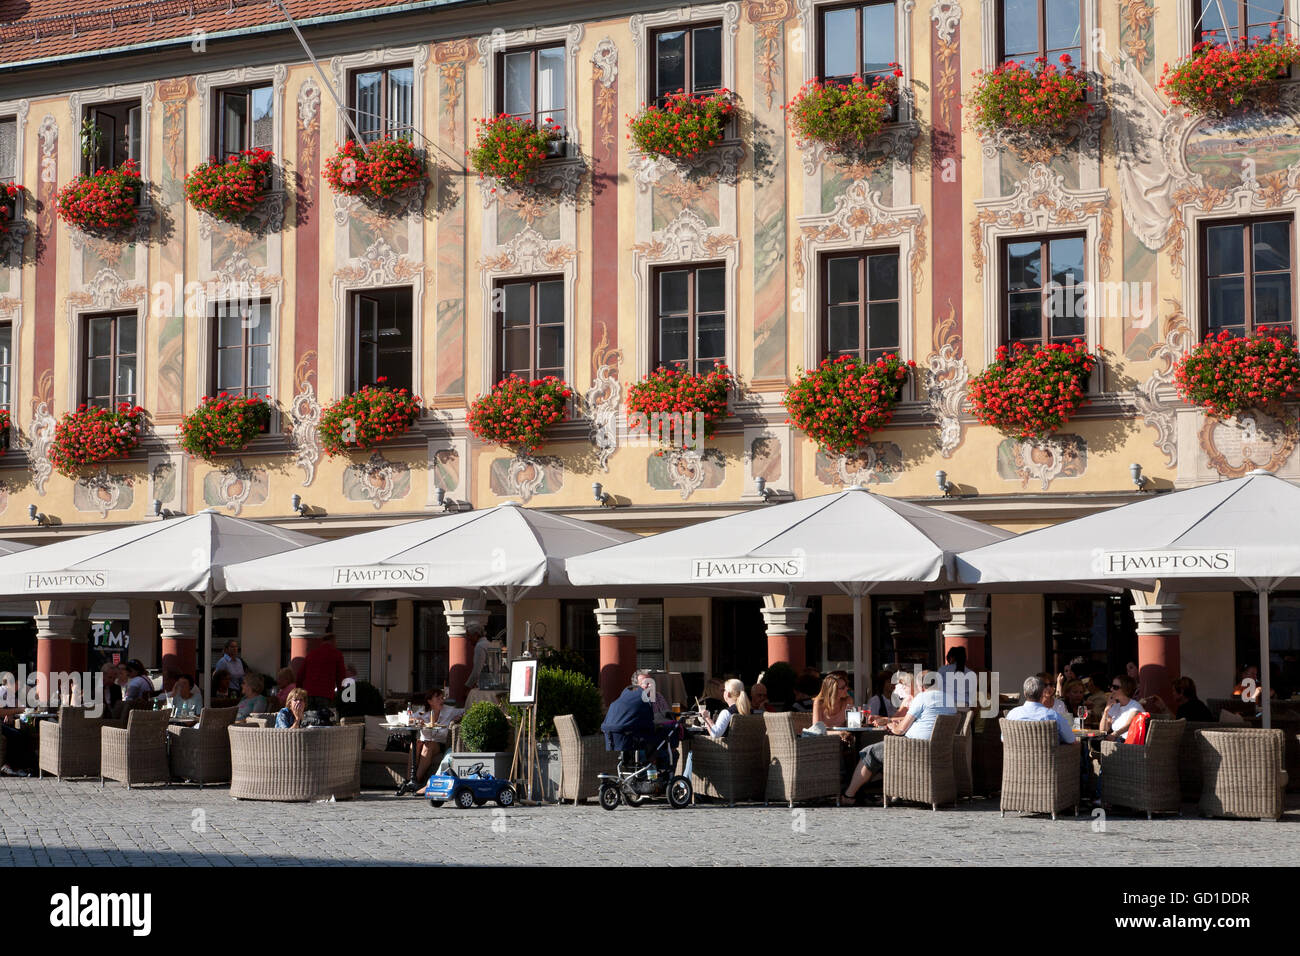 Cafe and restaurant Hamptons in the Steuerhaus building at the market place, Memmingen, Allgaeu, Bavaria - Stock Image